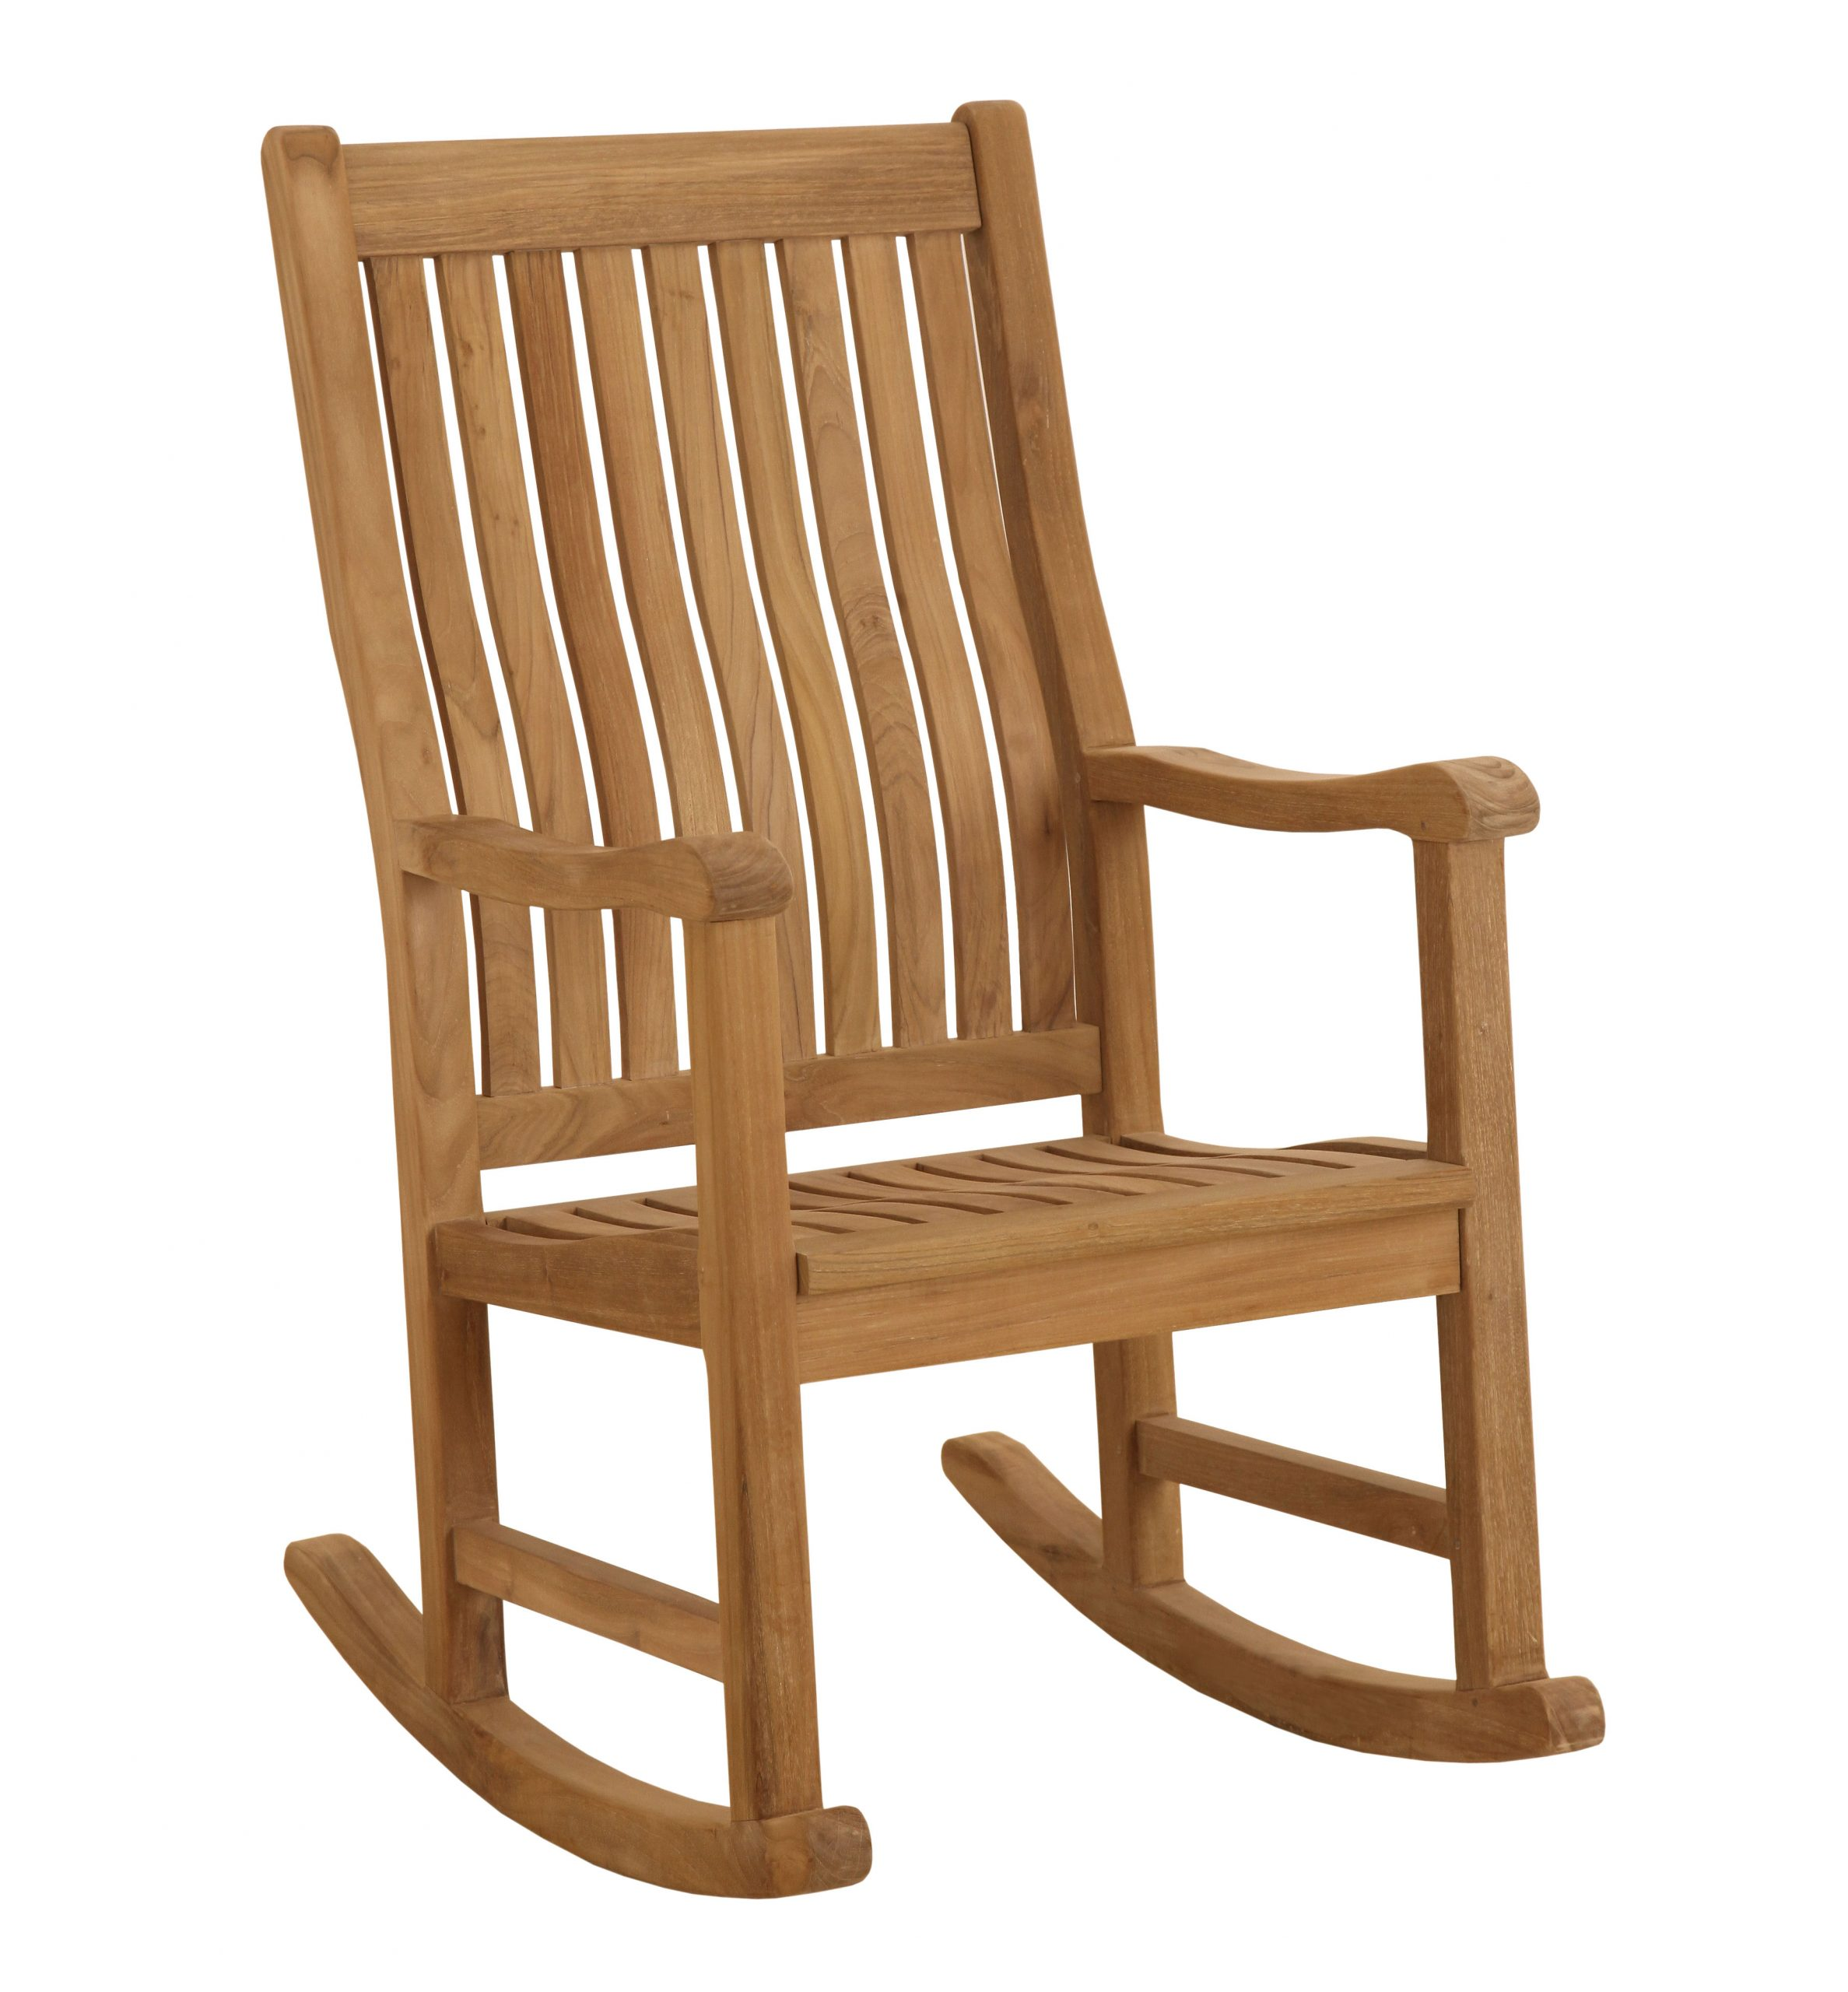 Classic Teak Rocking Chair On Sale At Atlantic Patio